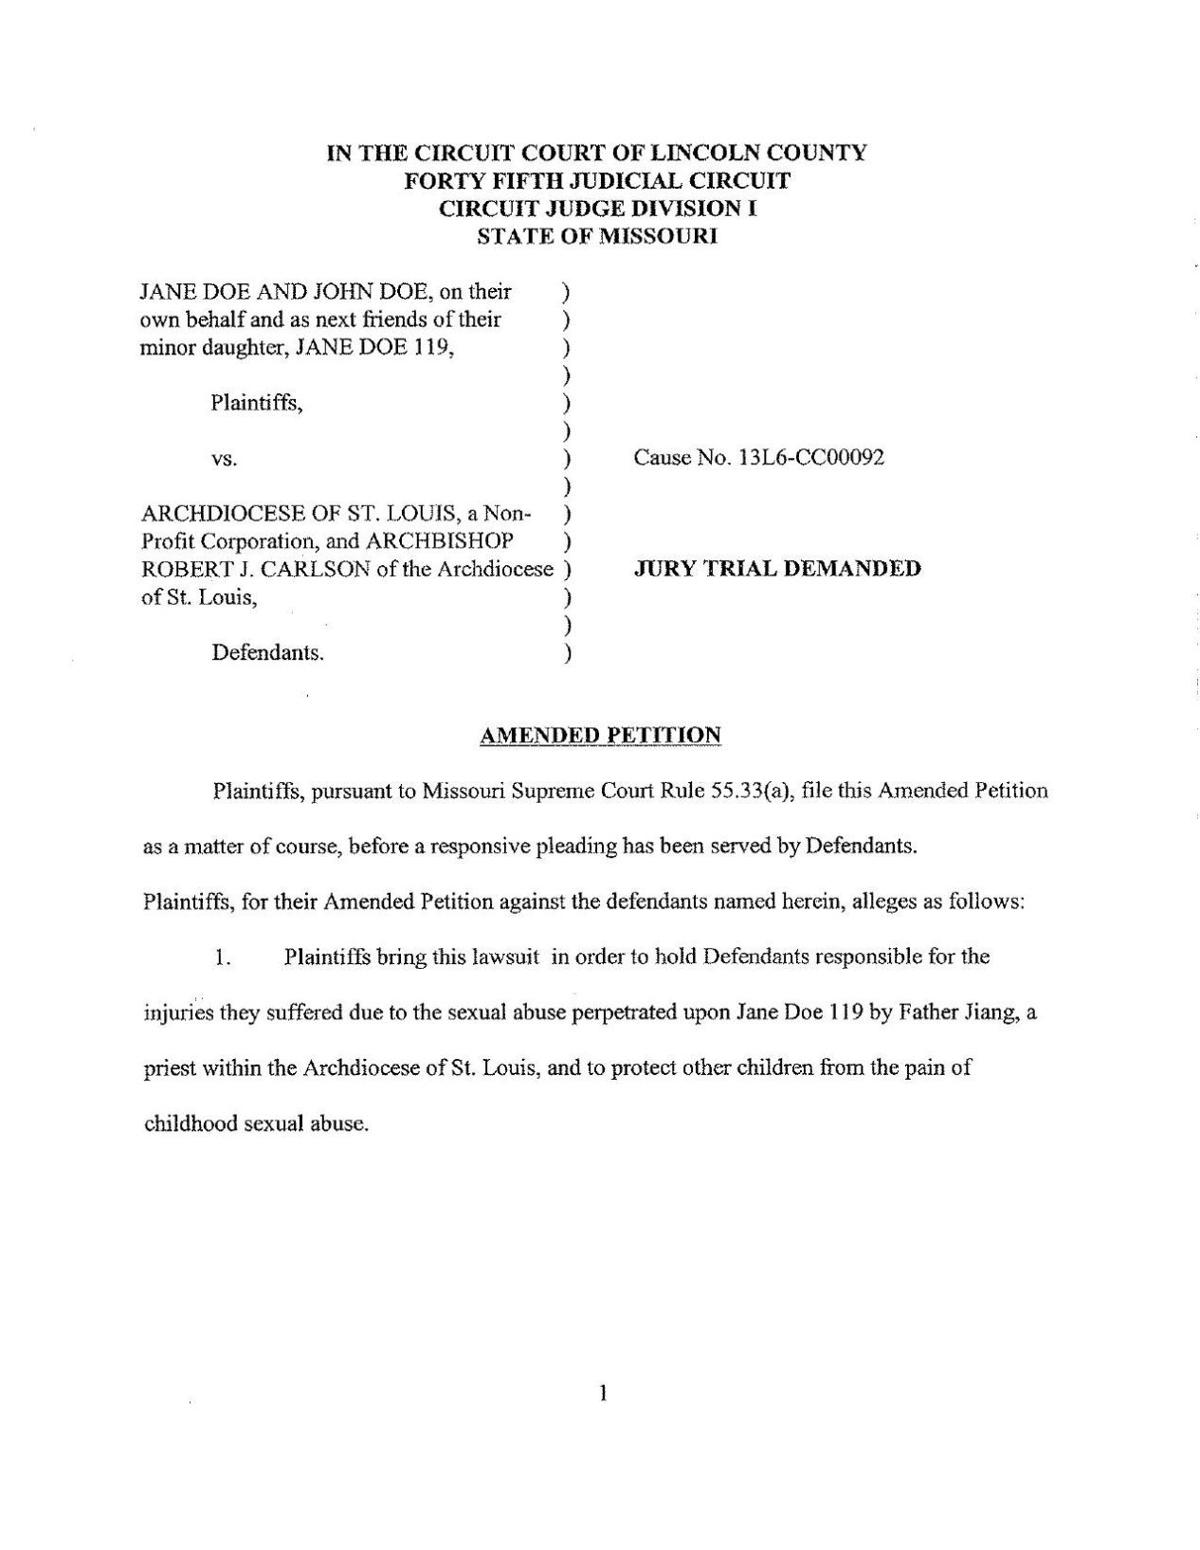 Jane Doe v St. Louis Archdiocese and Robert Carlson